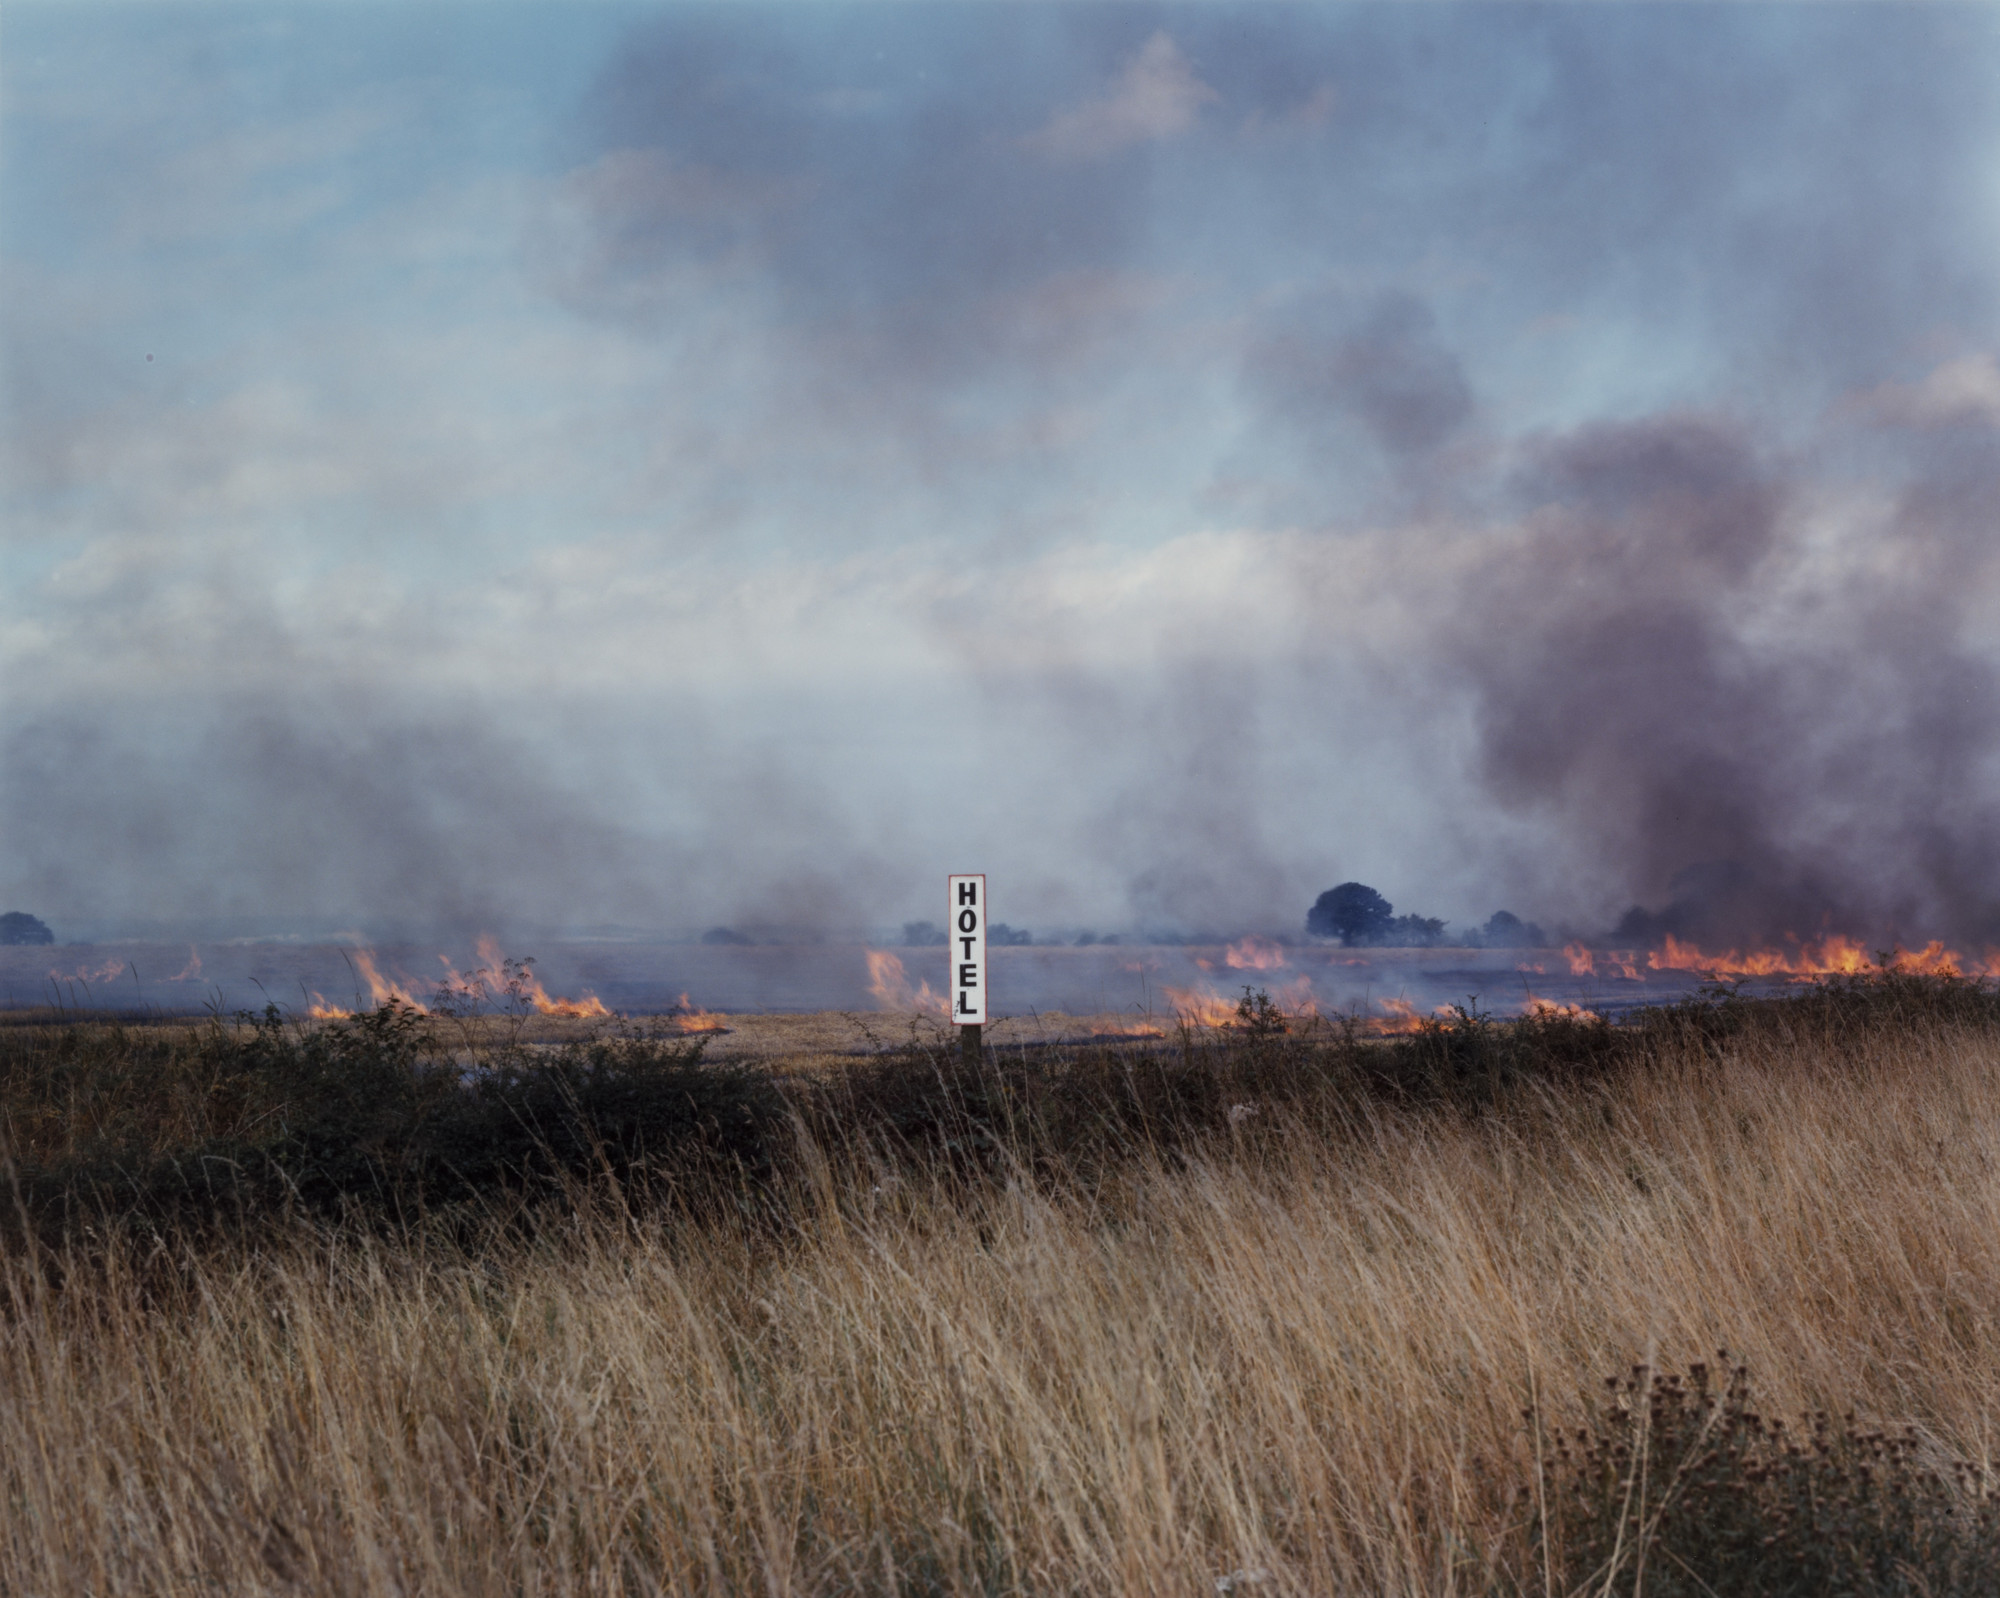 Paul Graham. Burning Fields, Melmerby, North Yorkshire. September 1981